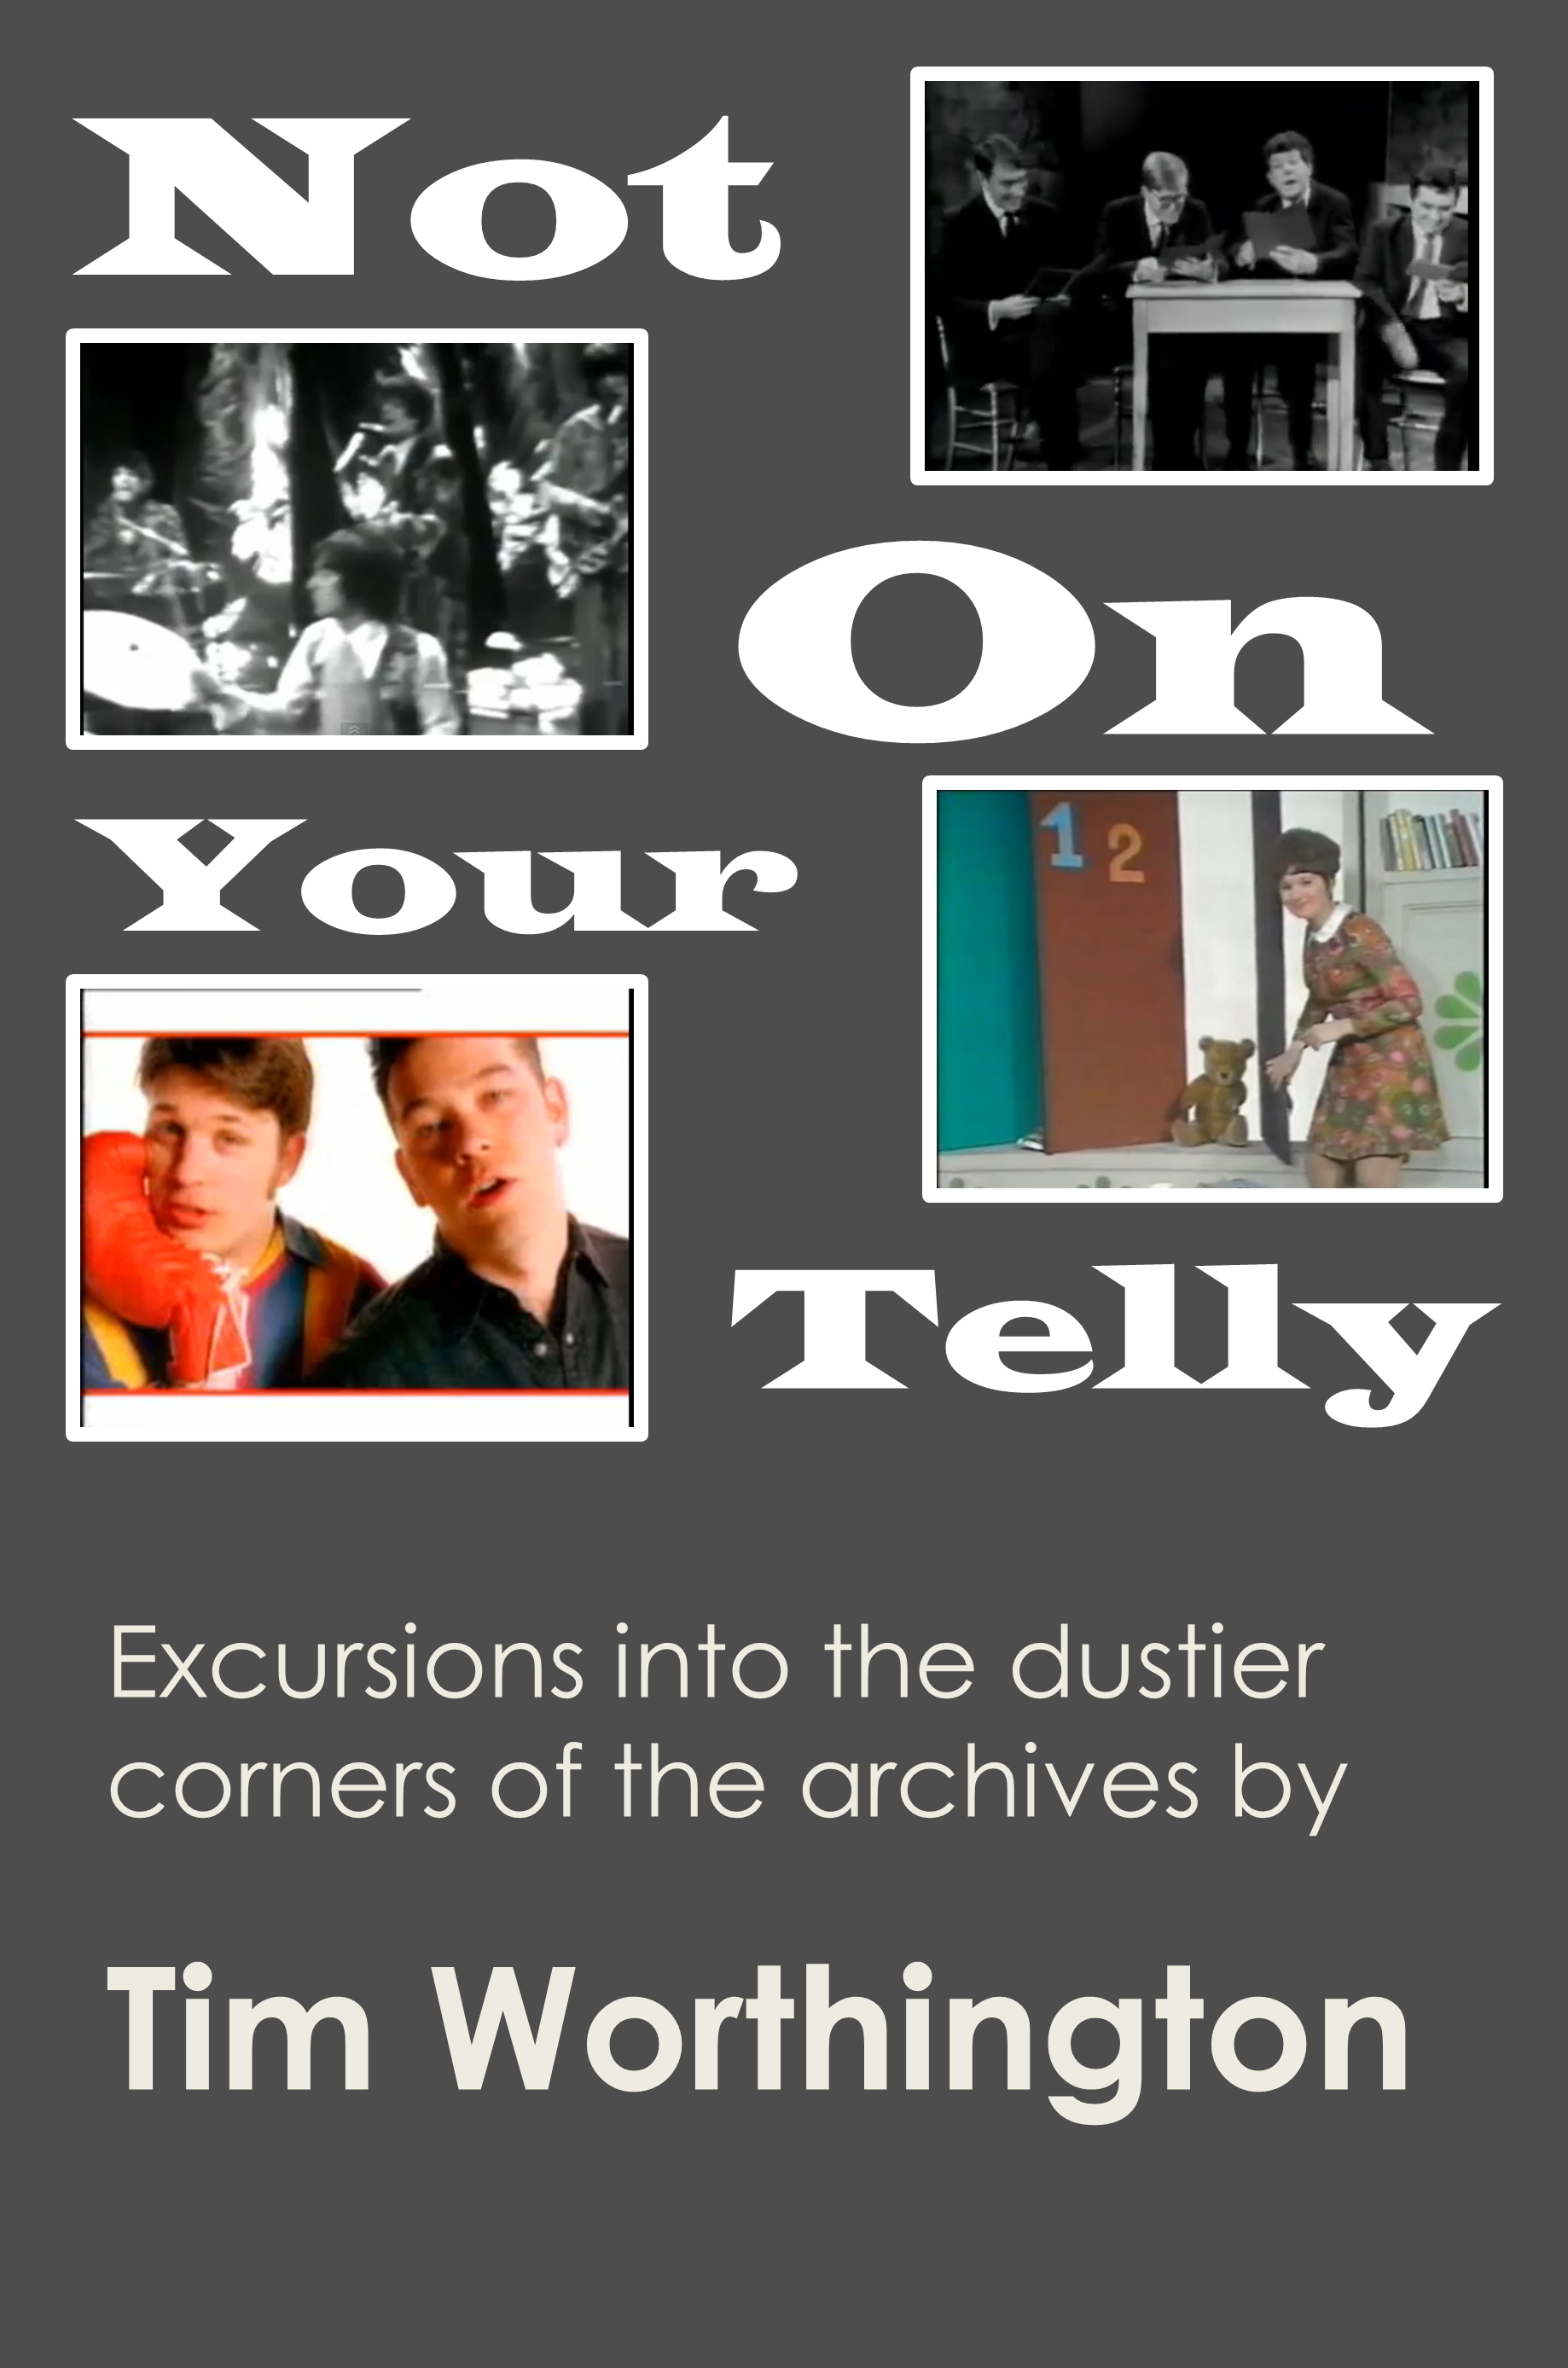 Not On Your Telly - excursions into the dustier corners of the archives by Tim Worthington.